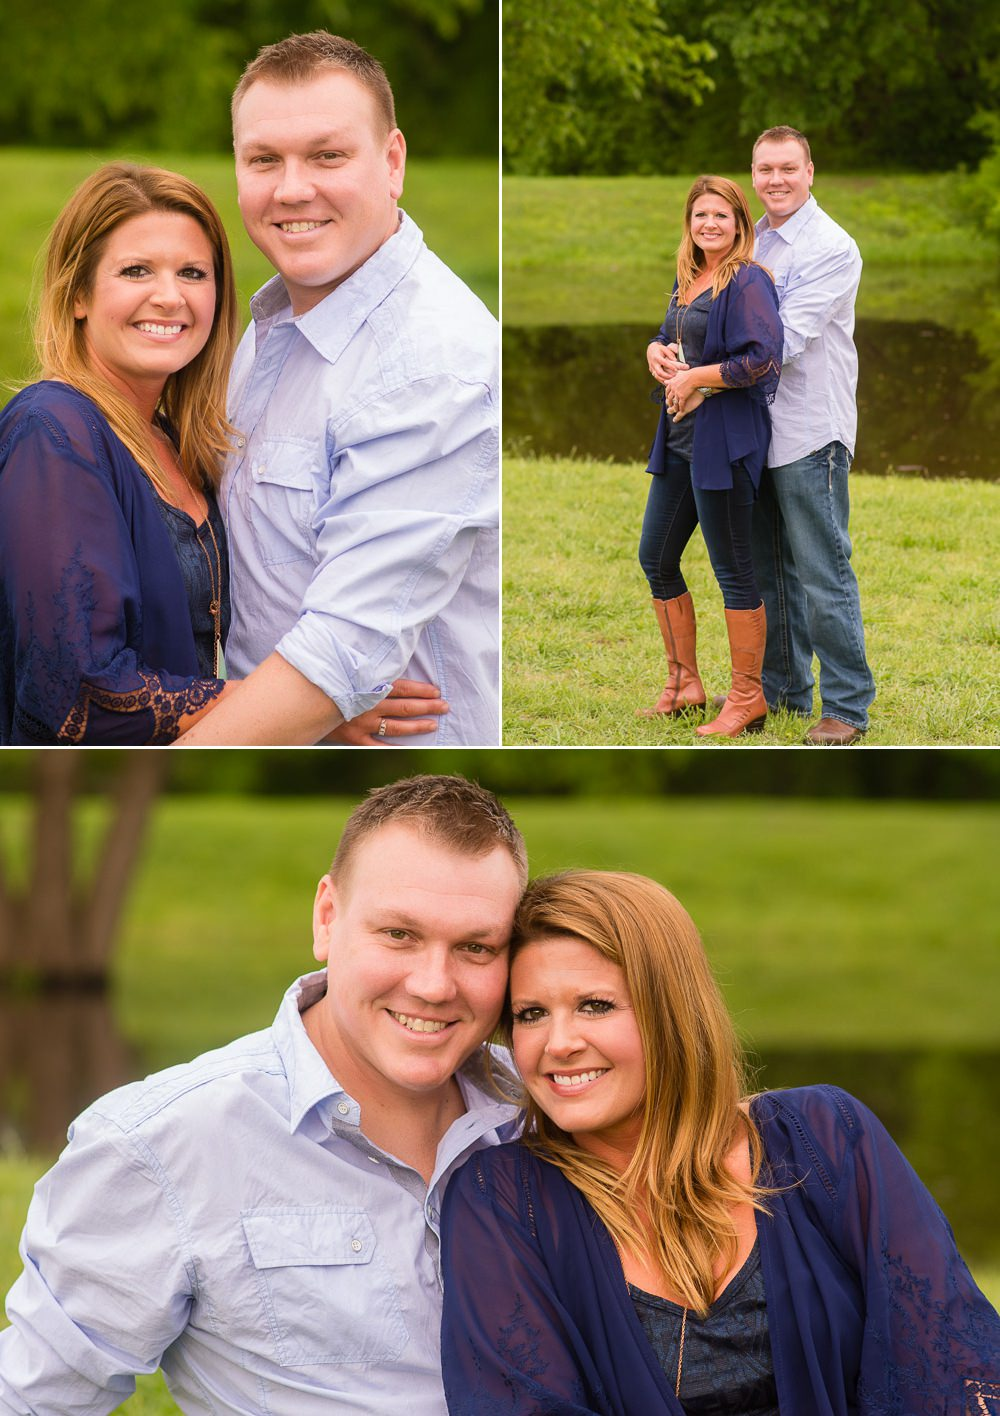 Daniel and Cassy Engagement Session 1